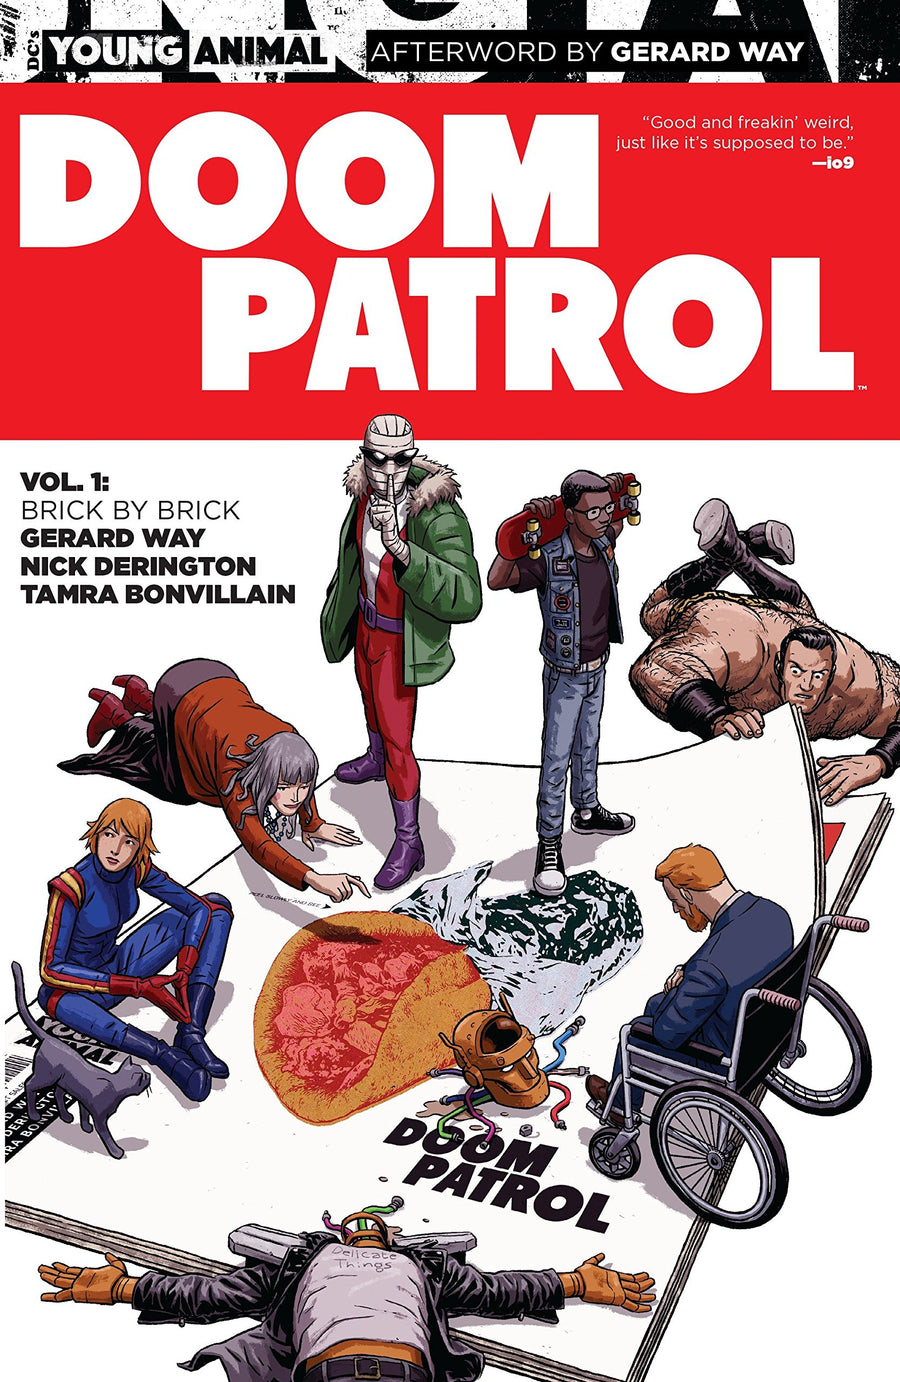 Doom Patrol Volume 1